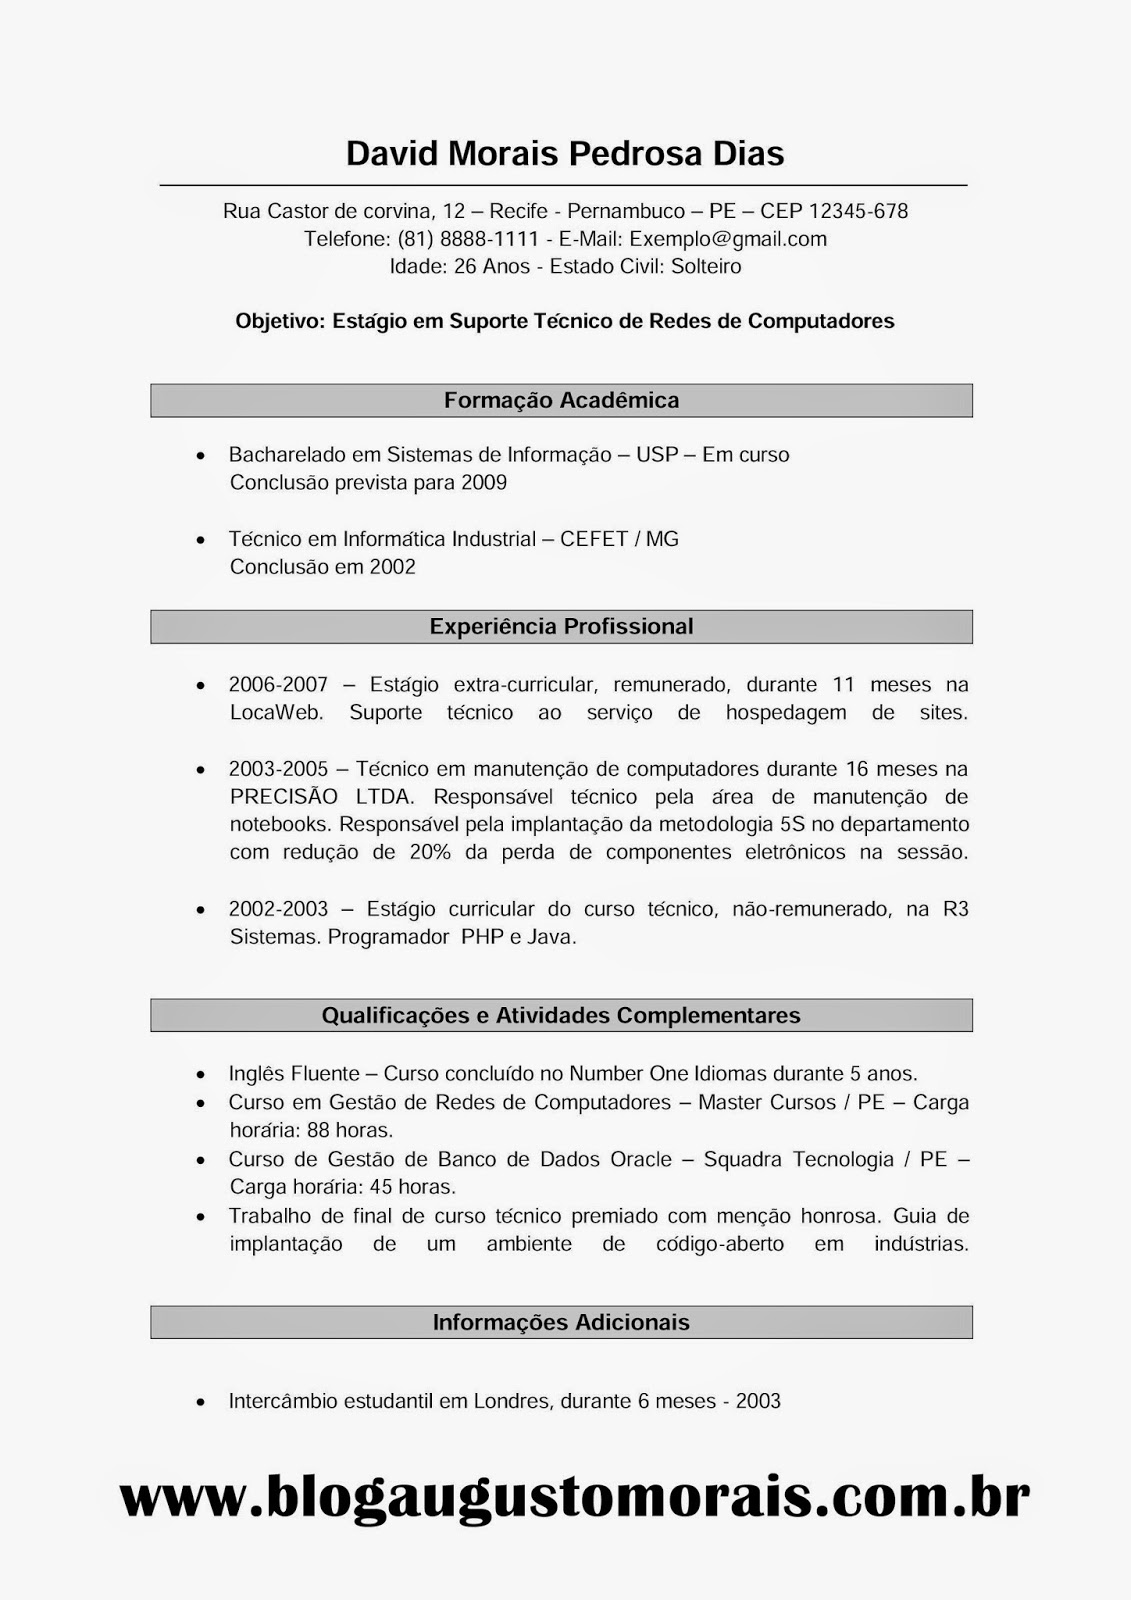 Curriculum Vitae Americano Download